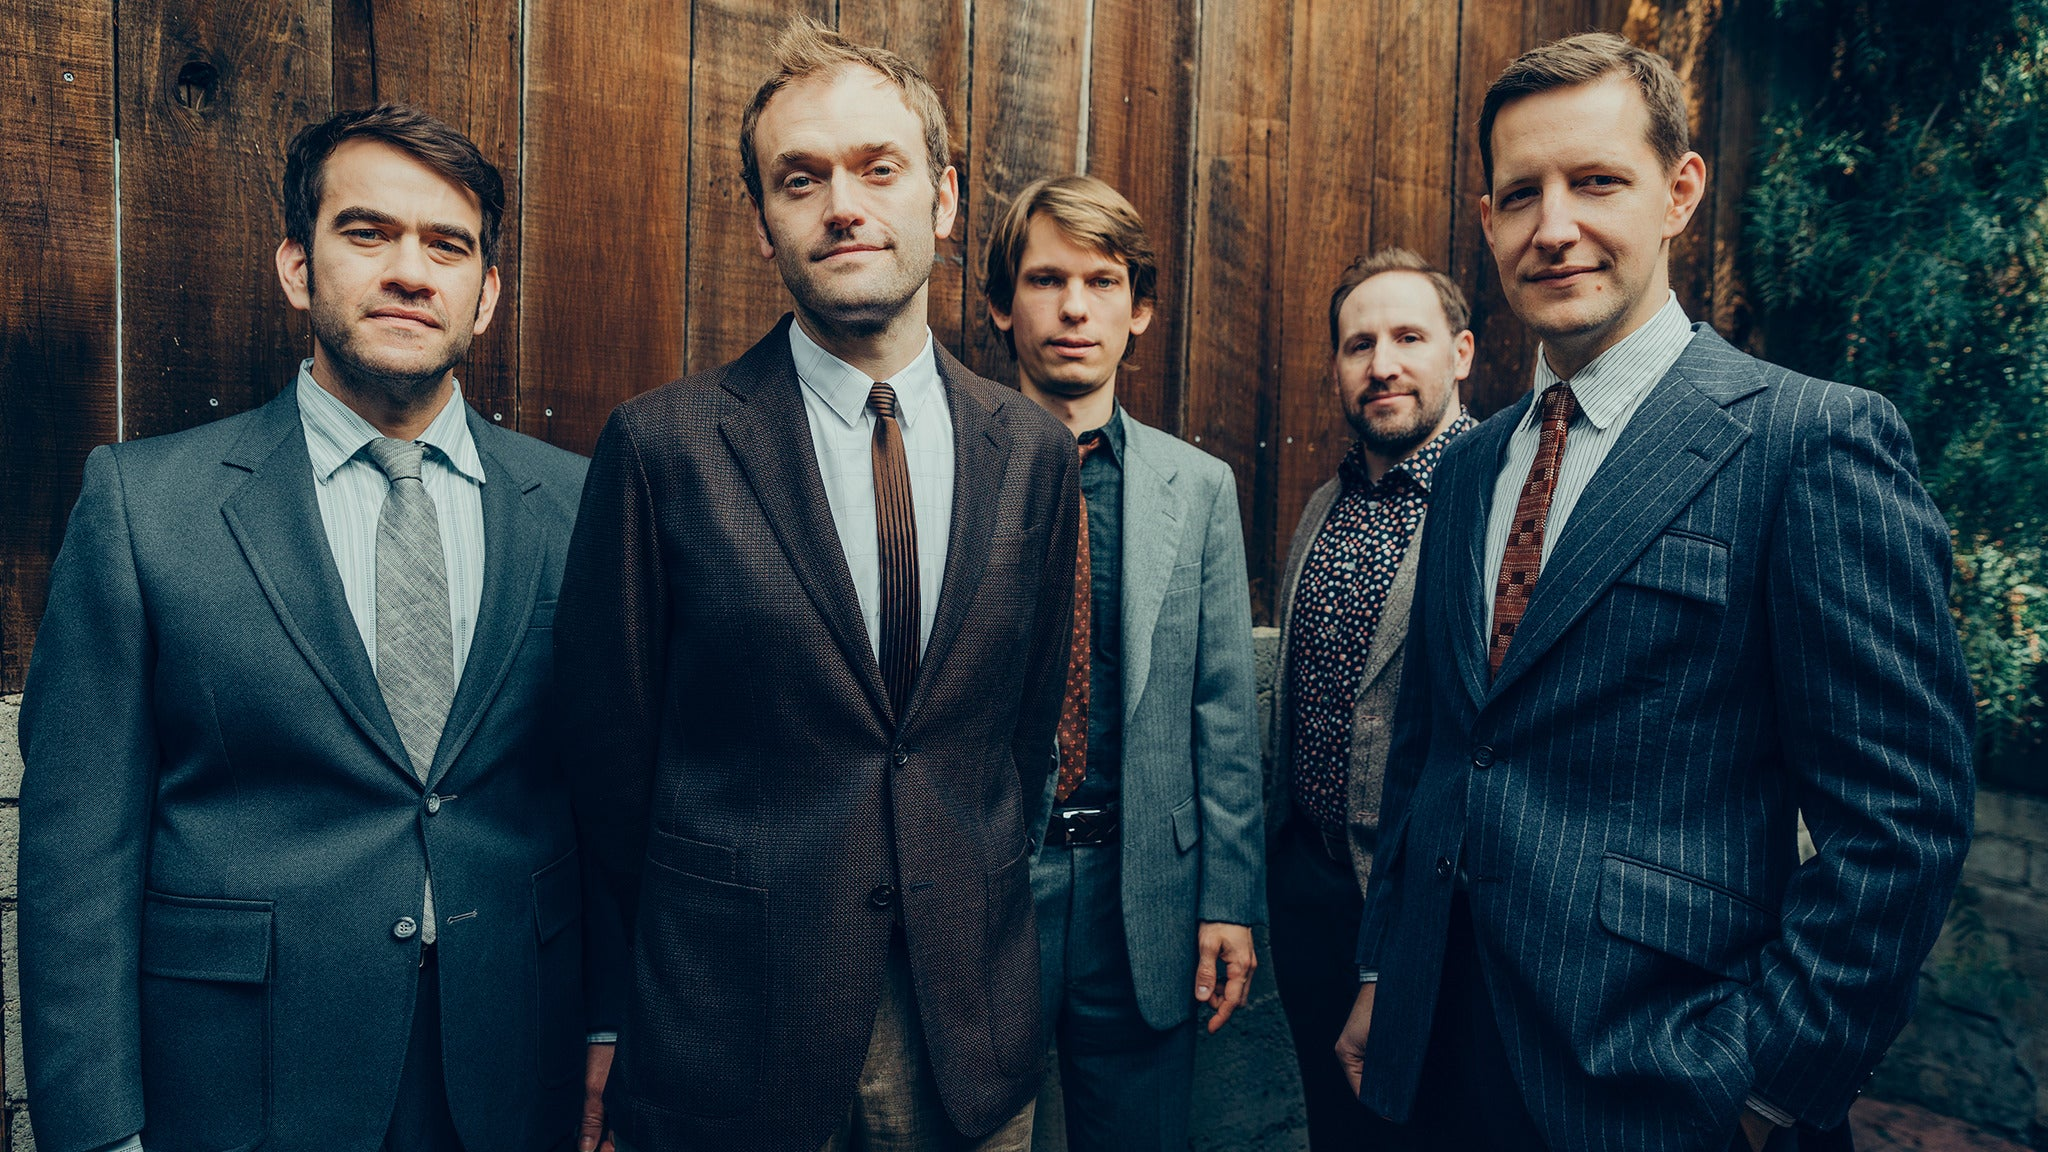 Punch Brothers pre-sale password for early tickets in Washington